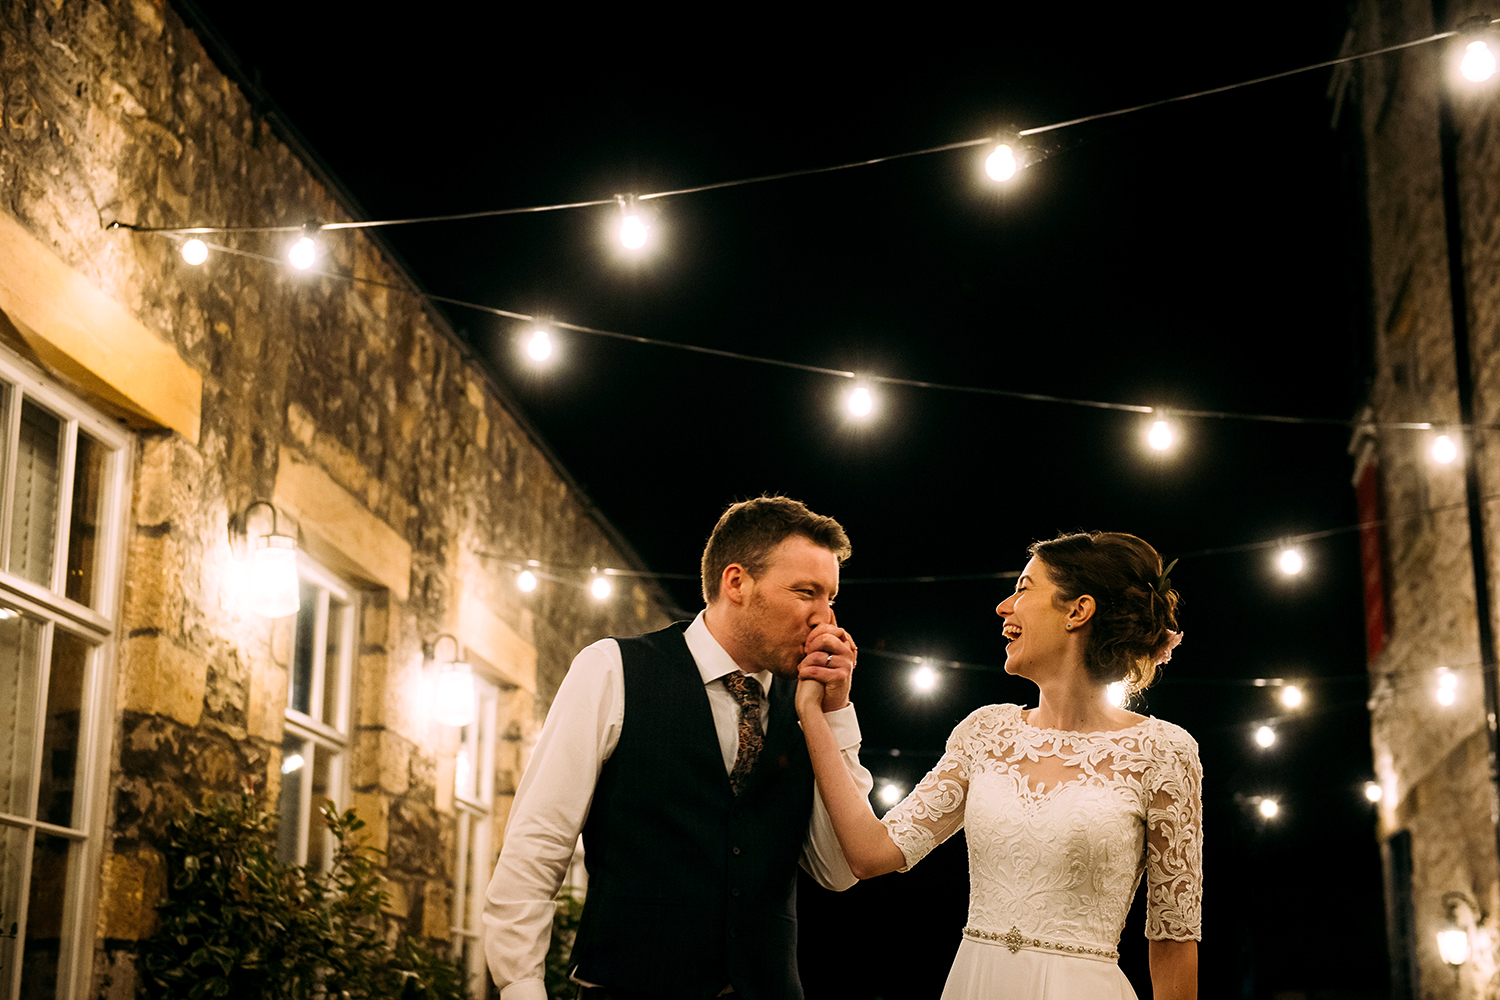 Couple at Holmes mill with the groom kissing the brides hand under the festoon lights